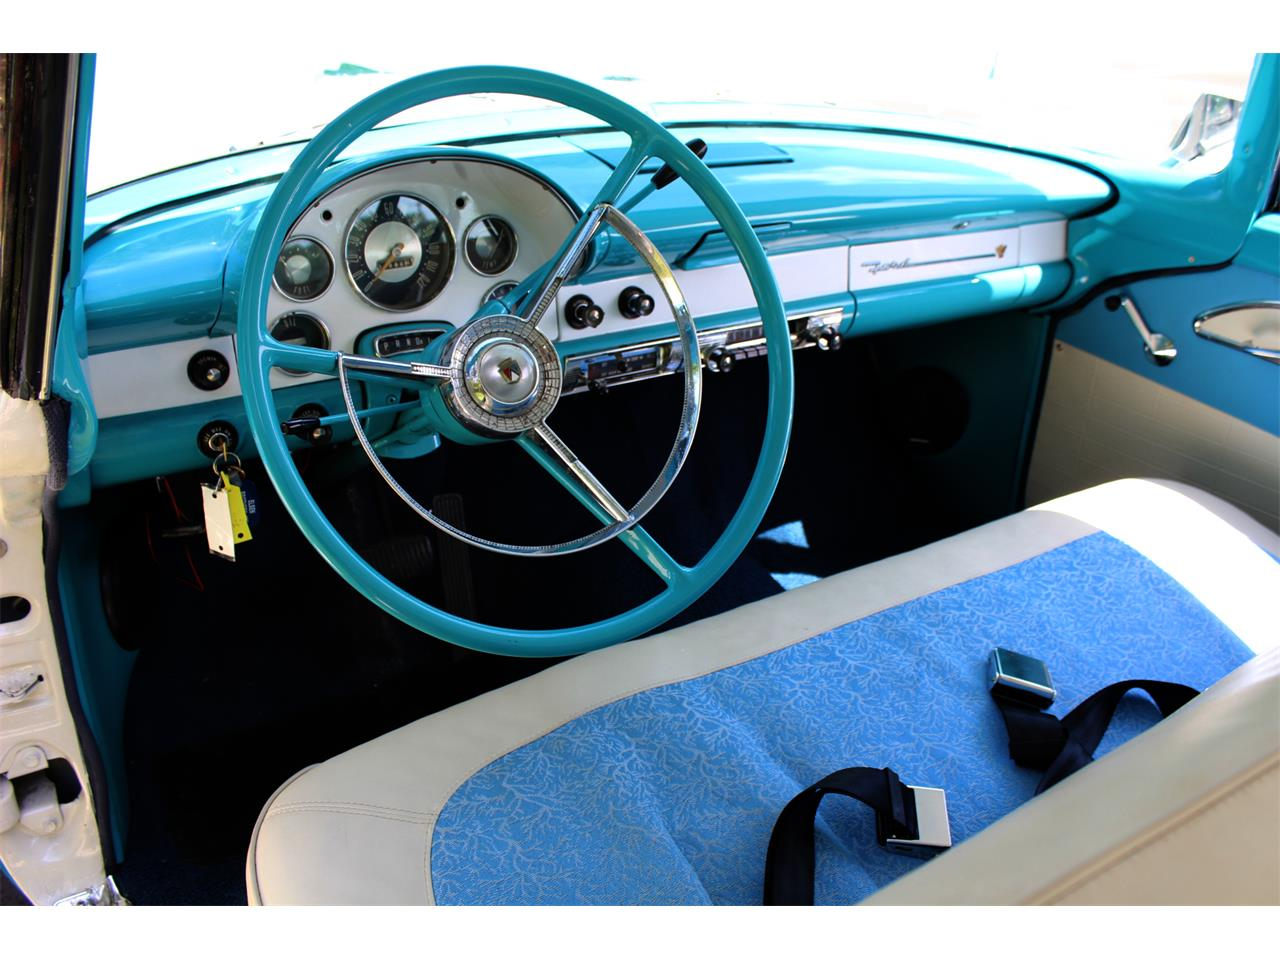 Large Picture of '56 Ford Fairlane - $17,999.00 - PALK